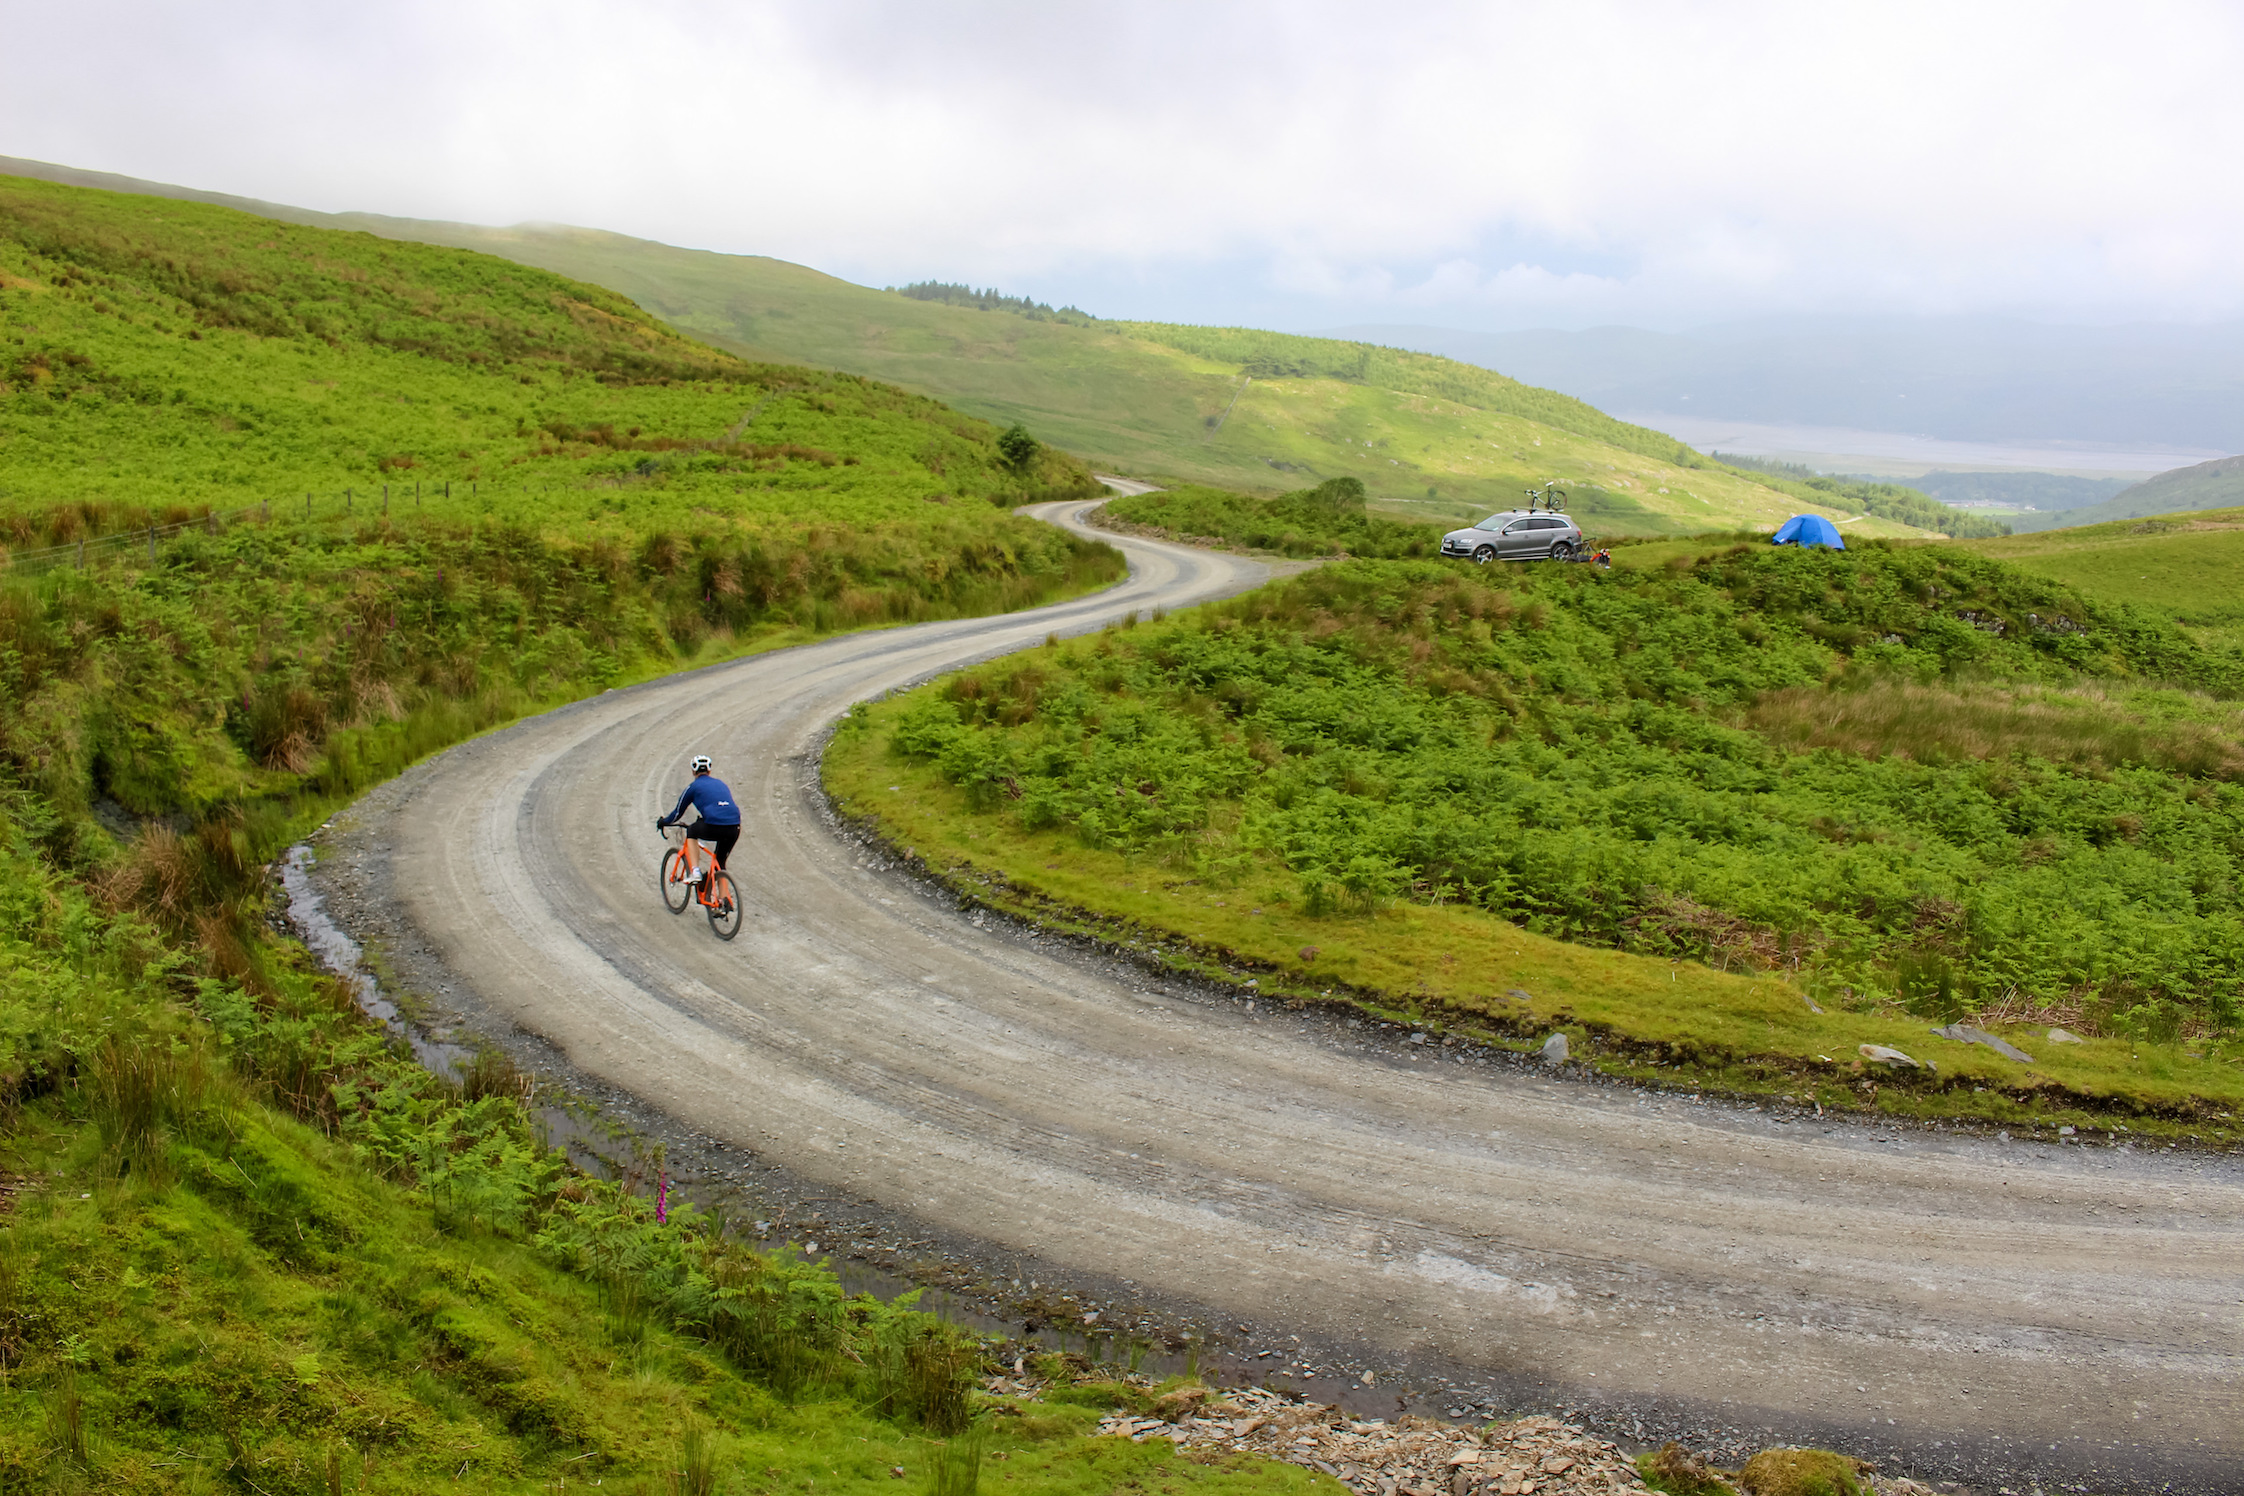 Everesting #3 – Off-Road: Mynydd Graean (Gravel Mountain)